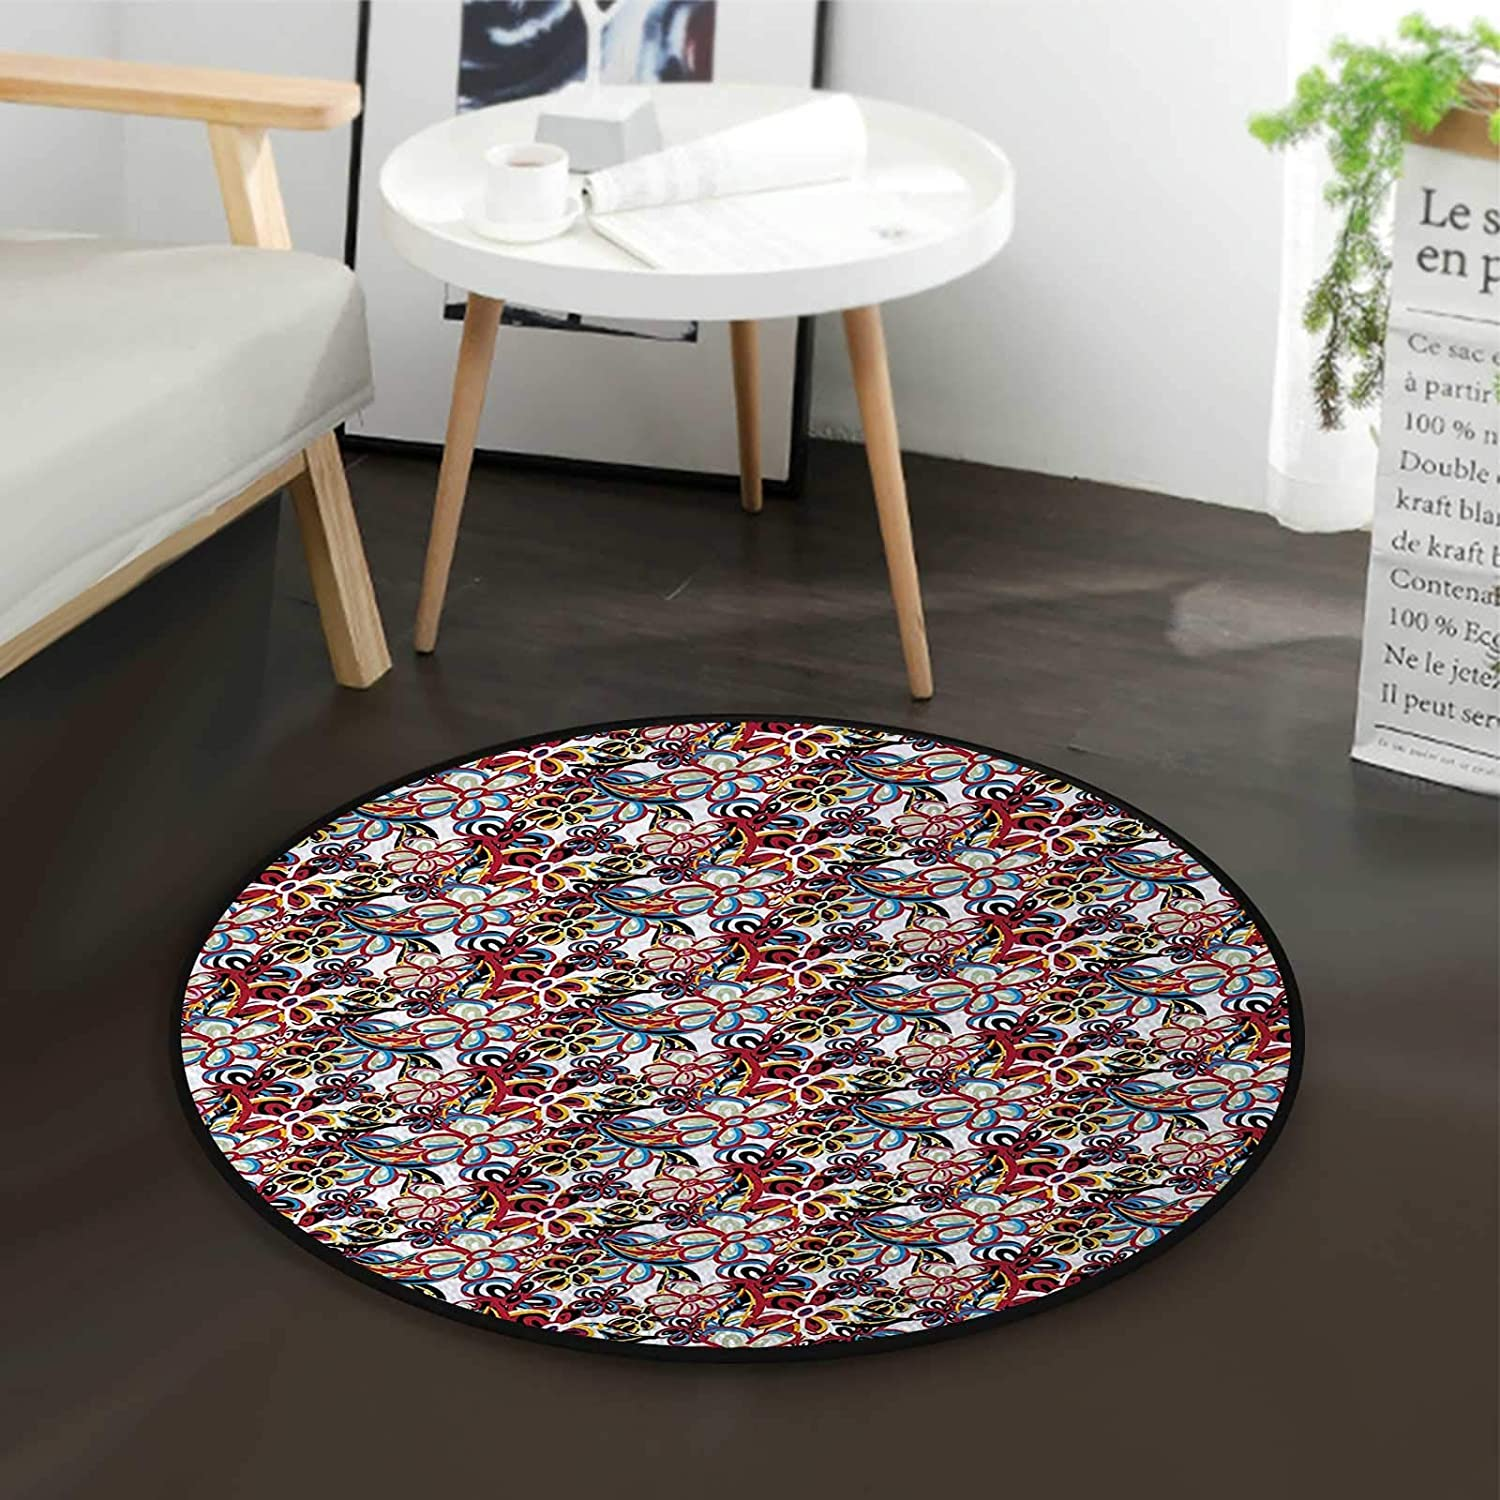 Multicolor Max 47% OFF Coffee Table Rug Colorful Nashville-Davidson Mall Corner Computer Rugs Chair